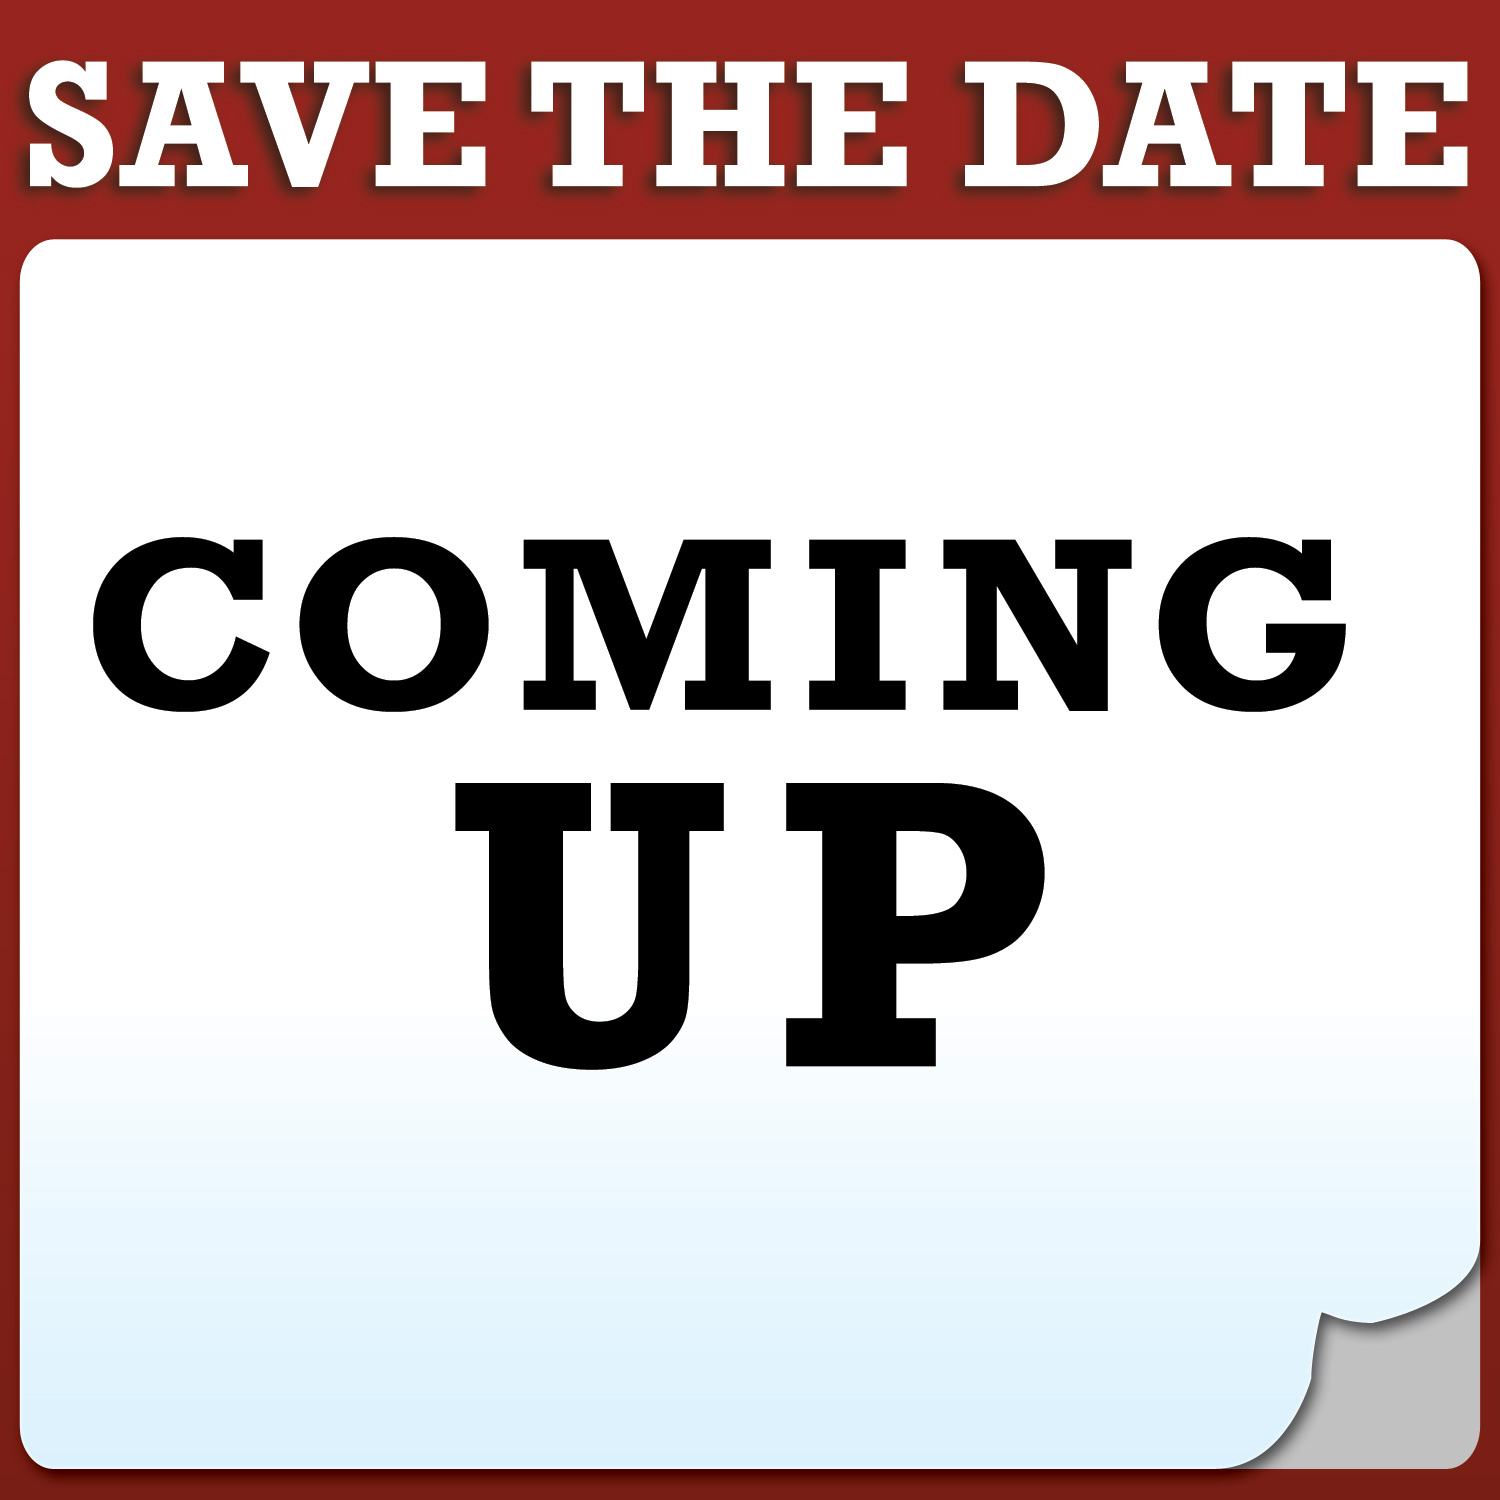 Mark your clipart diary. The date